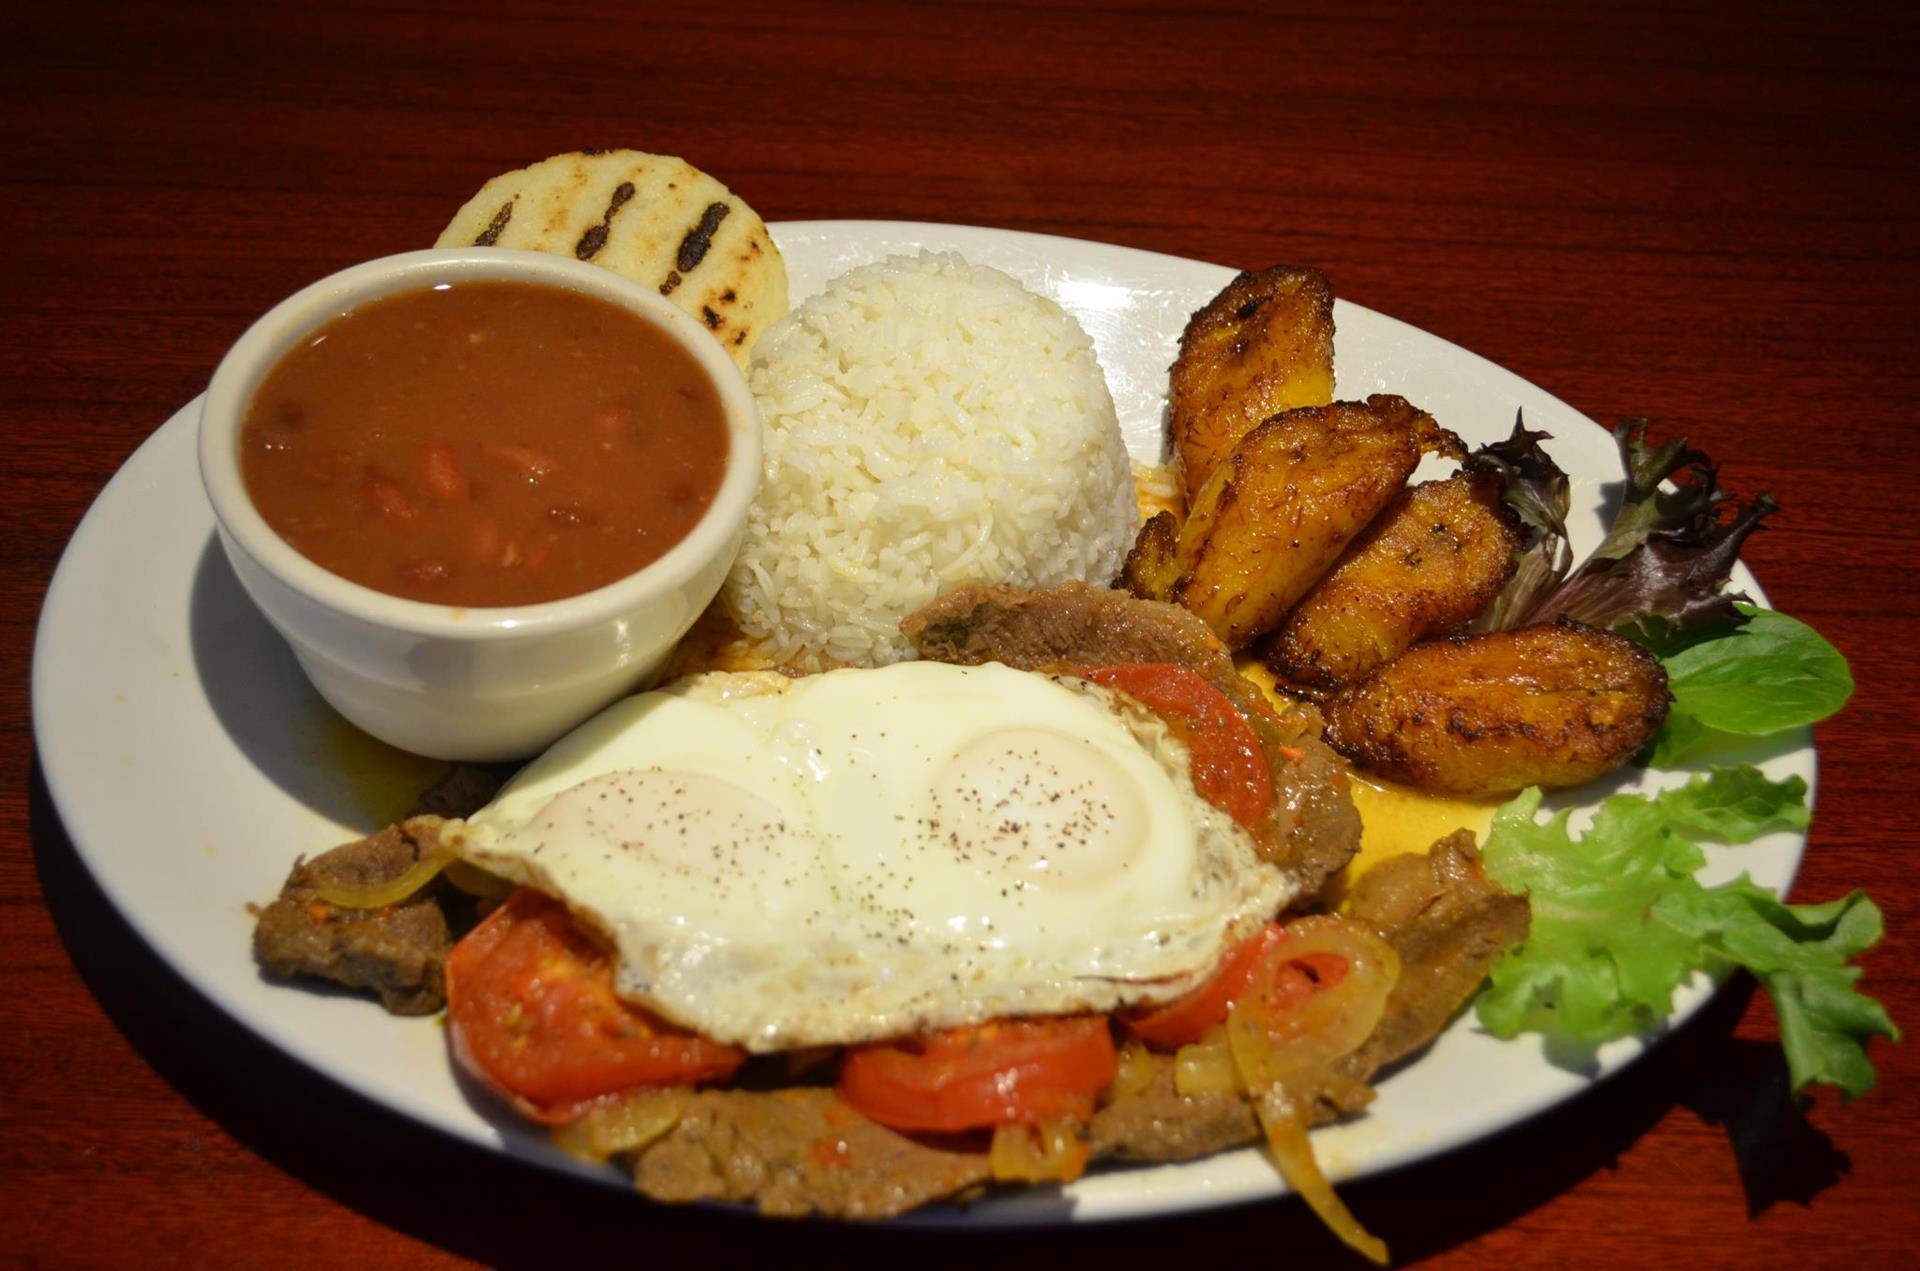 Calentado Valluno: Grilled steak, two eggs, mixed rice & lentils with diced sweet plantains and a small arepa